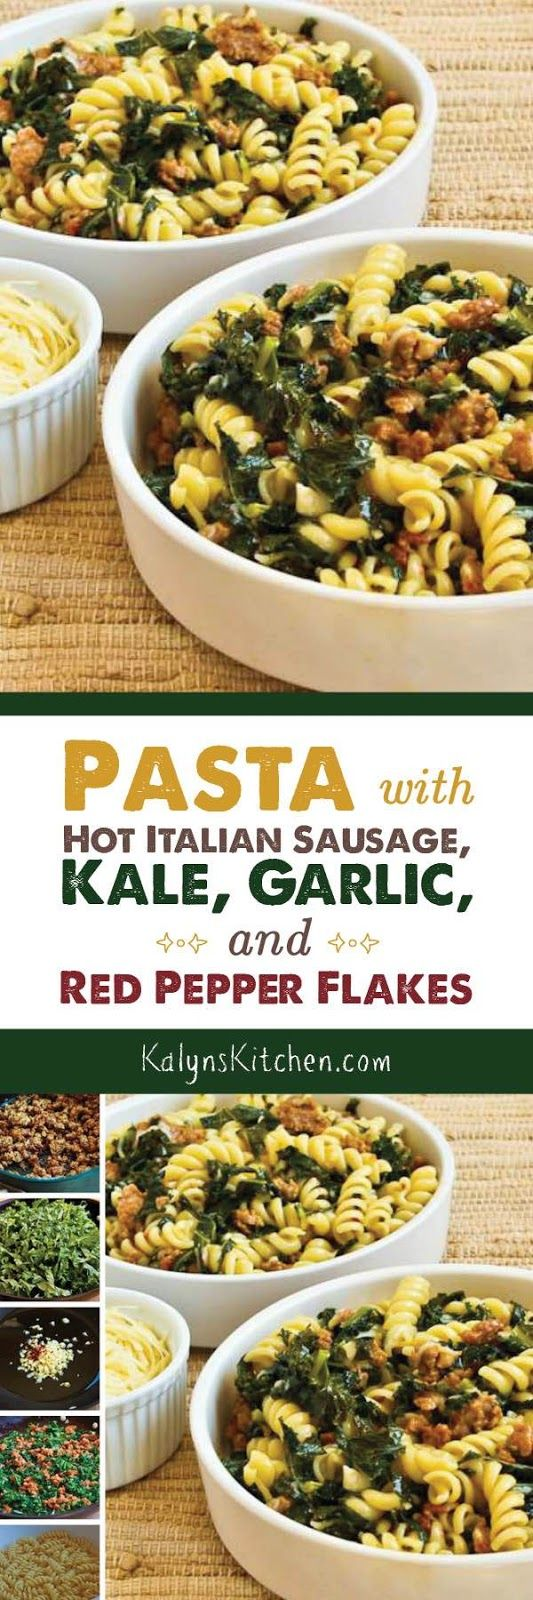 Pasta with Hot Italian Sausage, Kale, Garlic, and Red Pepper Flakes is one of the tastiest things I've made with kale! [found on KalynsKitchen.com]